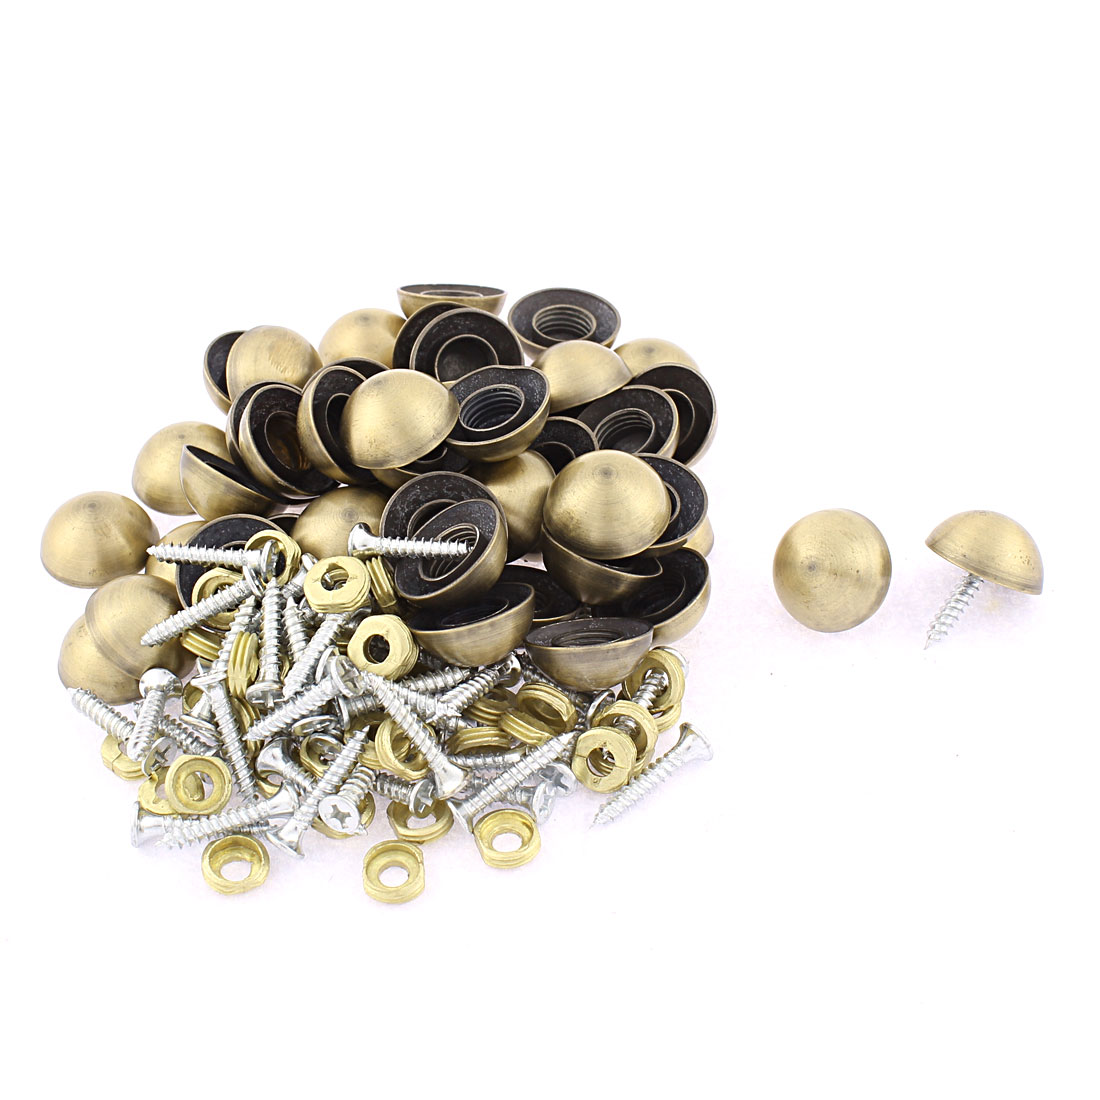 50pcs 18.5mm Dia Metal Semicircle Glass Mirror Screw Nail Decor Bronze Tone